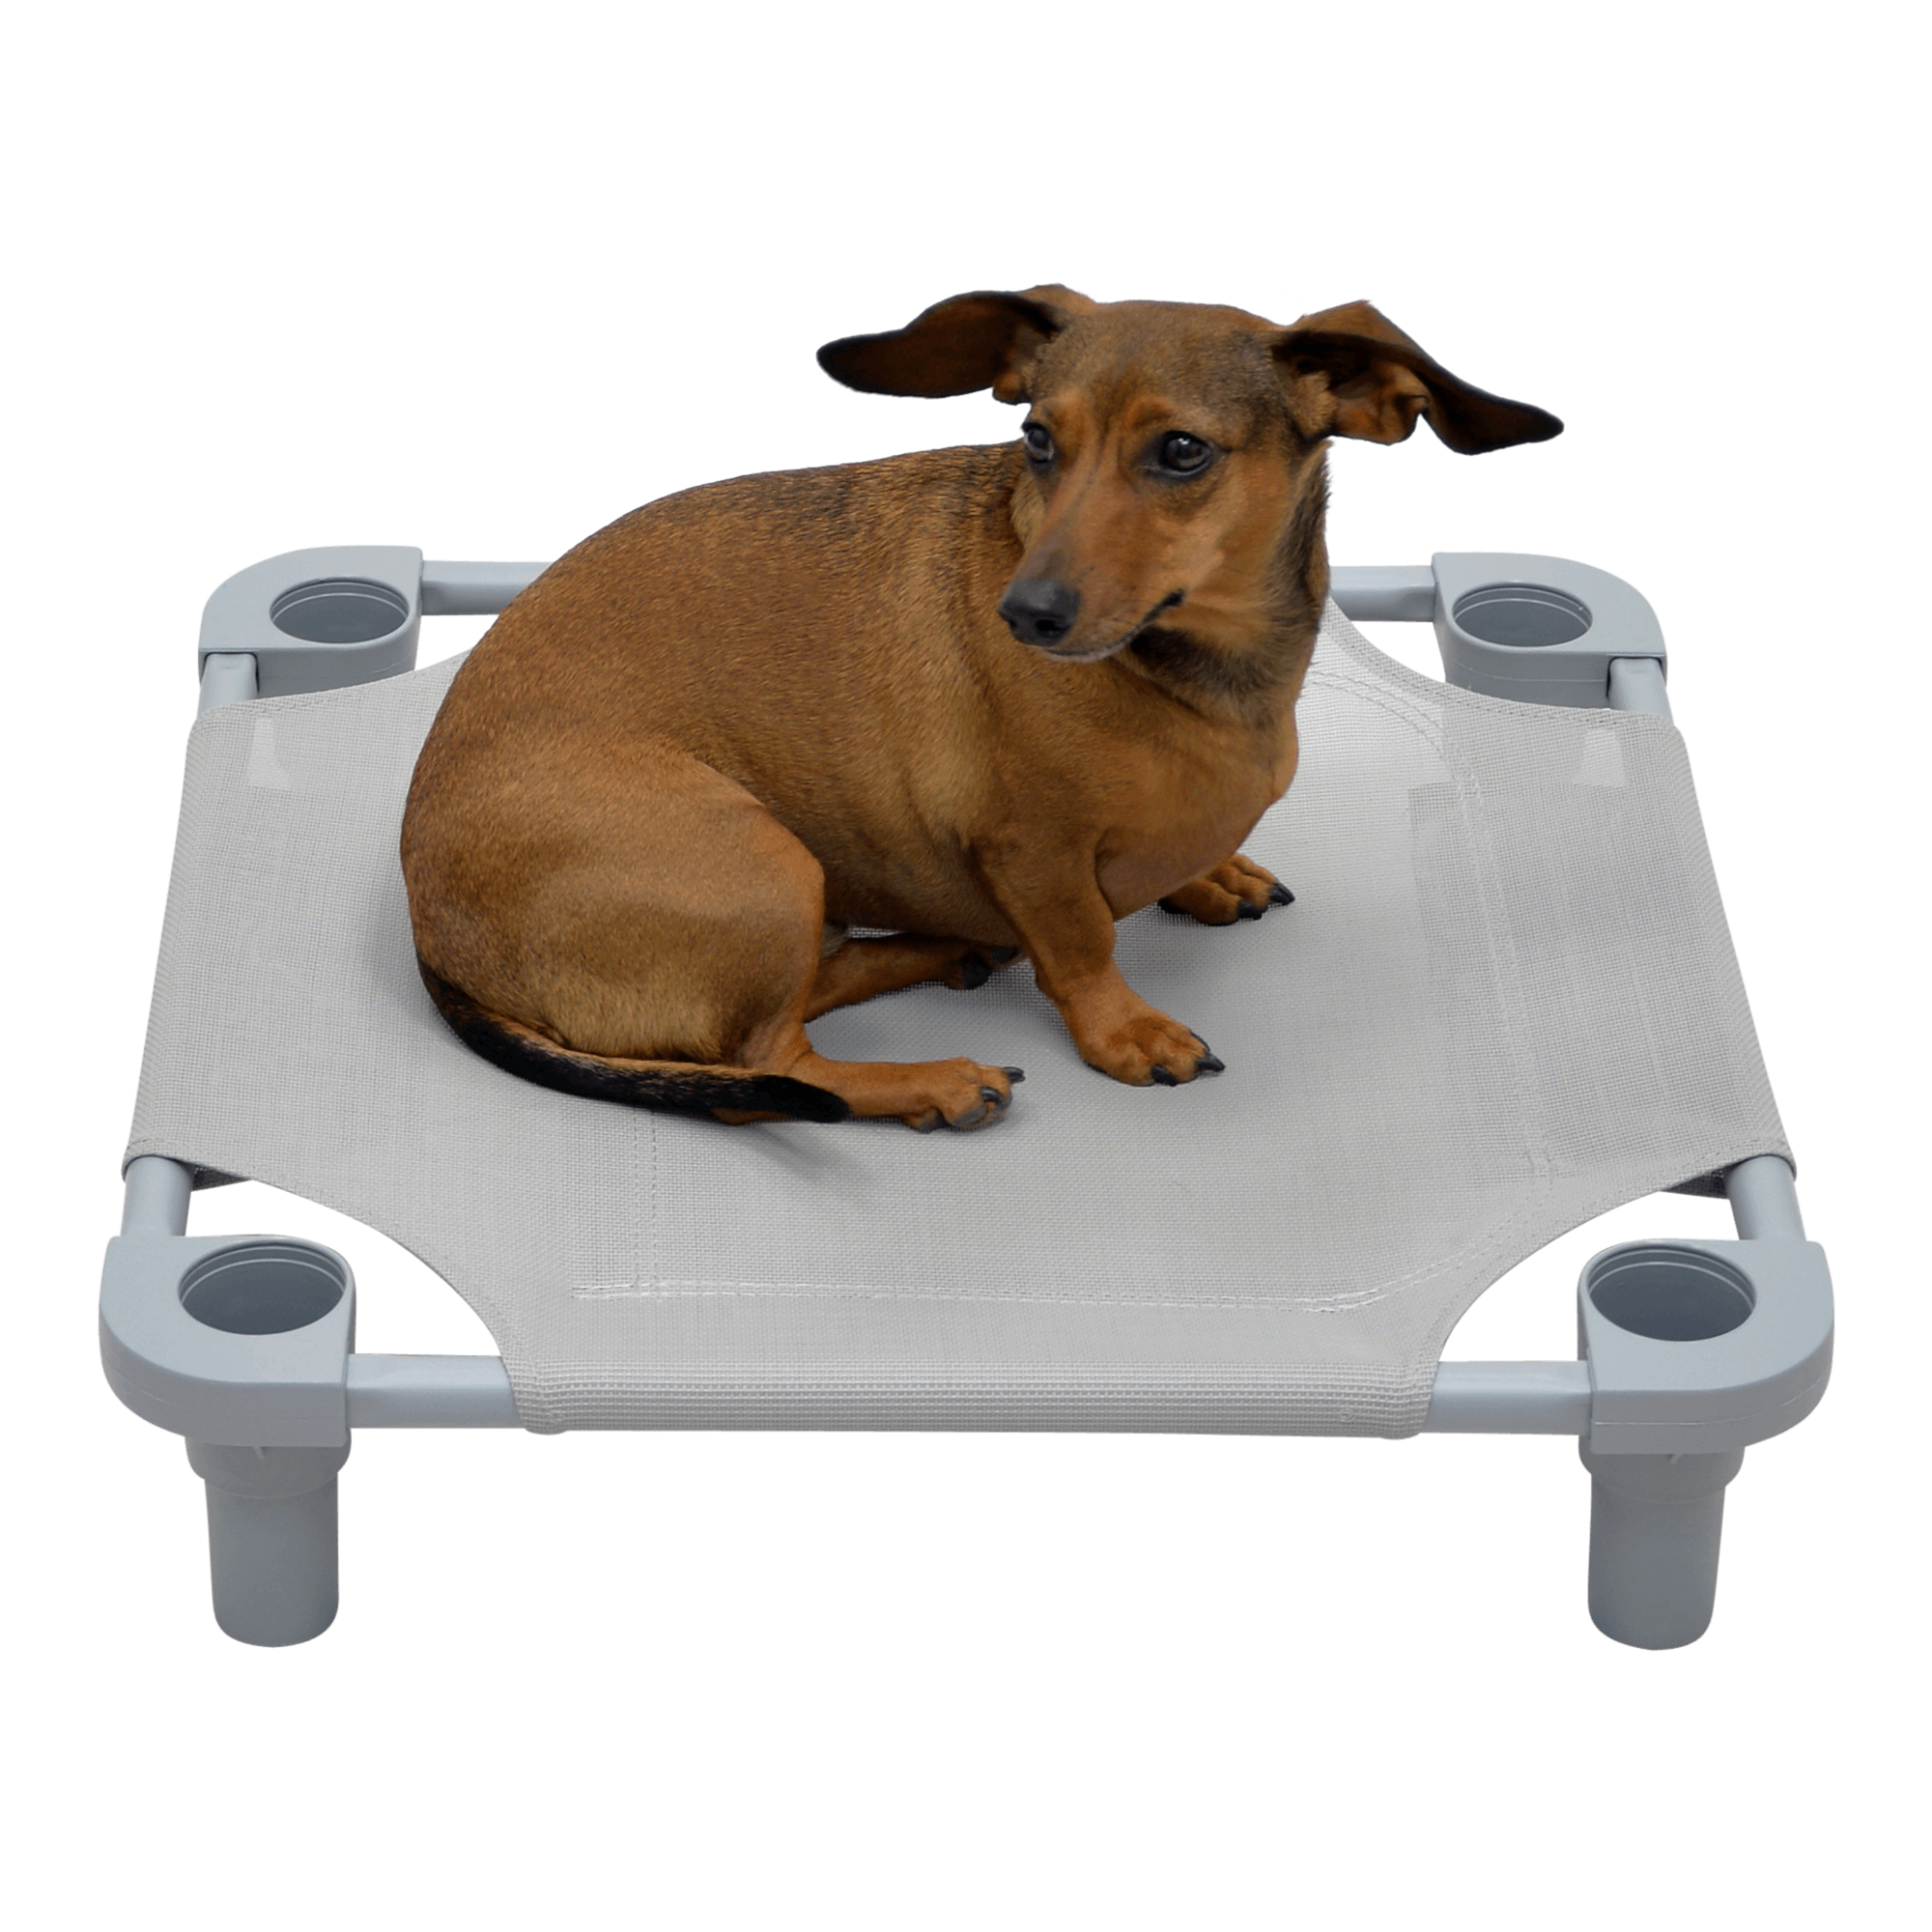 Solid Color Premium Weave Dog Cot - Gray